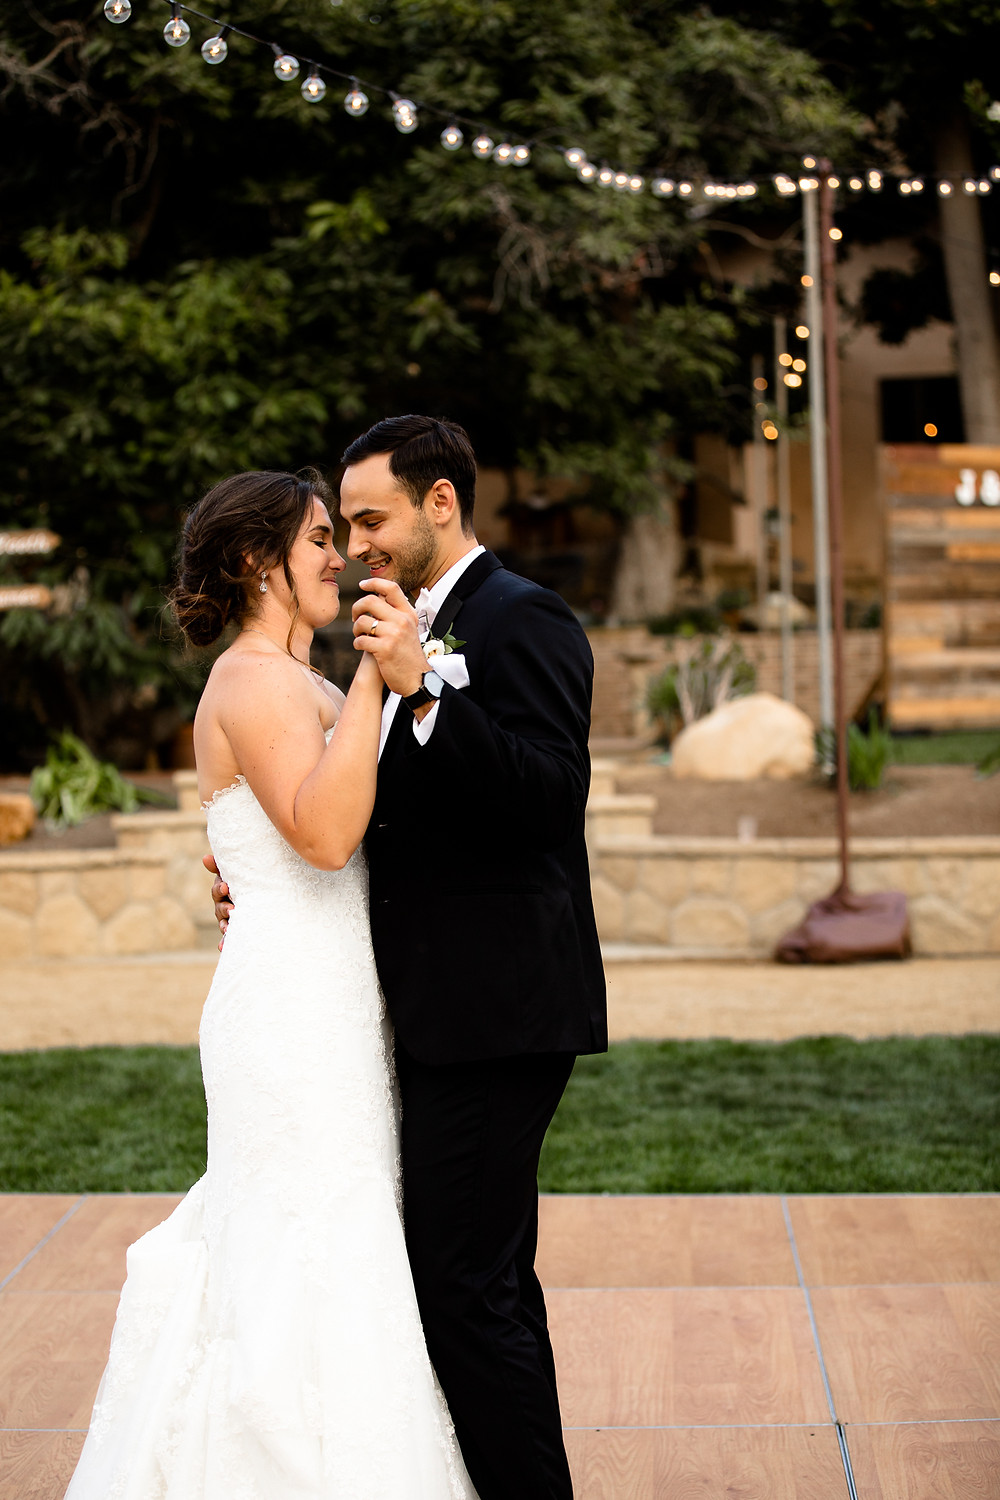 bride and groom's first dance at their backyard reception in santa barbara